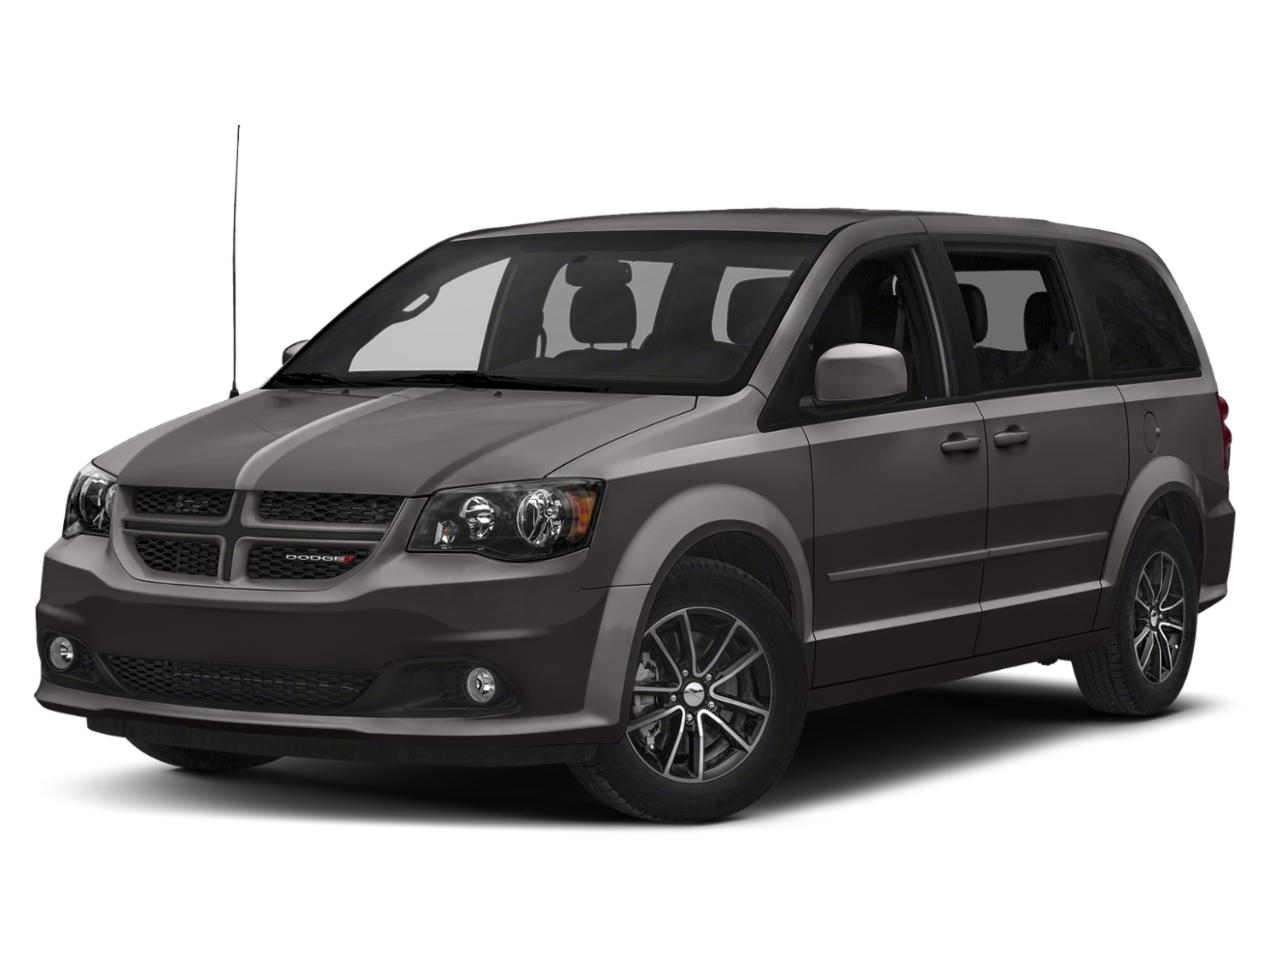 2019 Dodge Grand Caravan Vehicle Photo in San Angelo, TX 76901